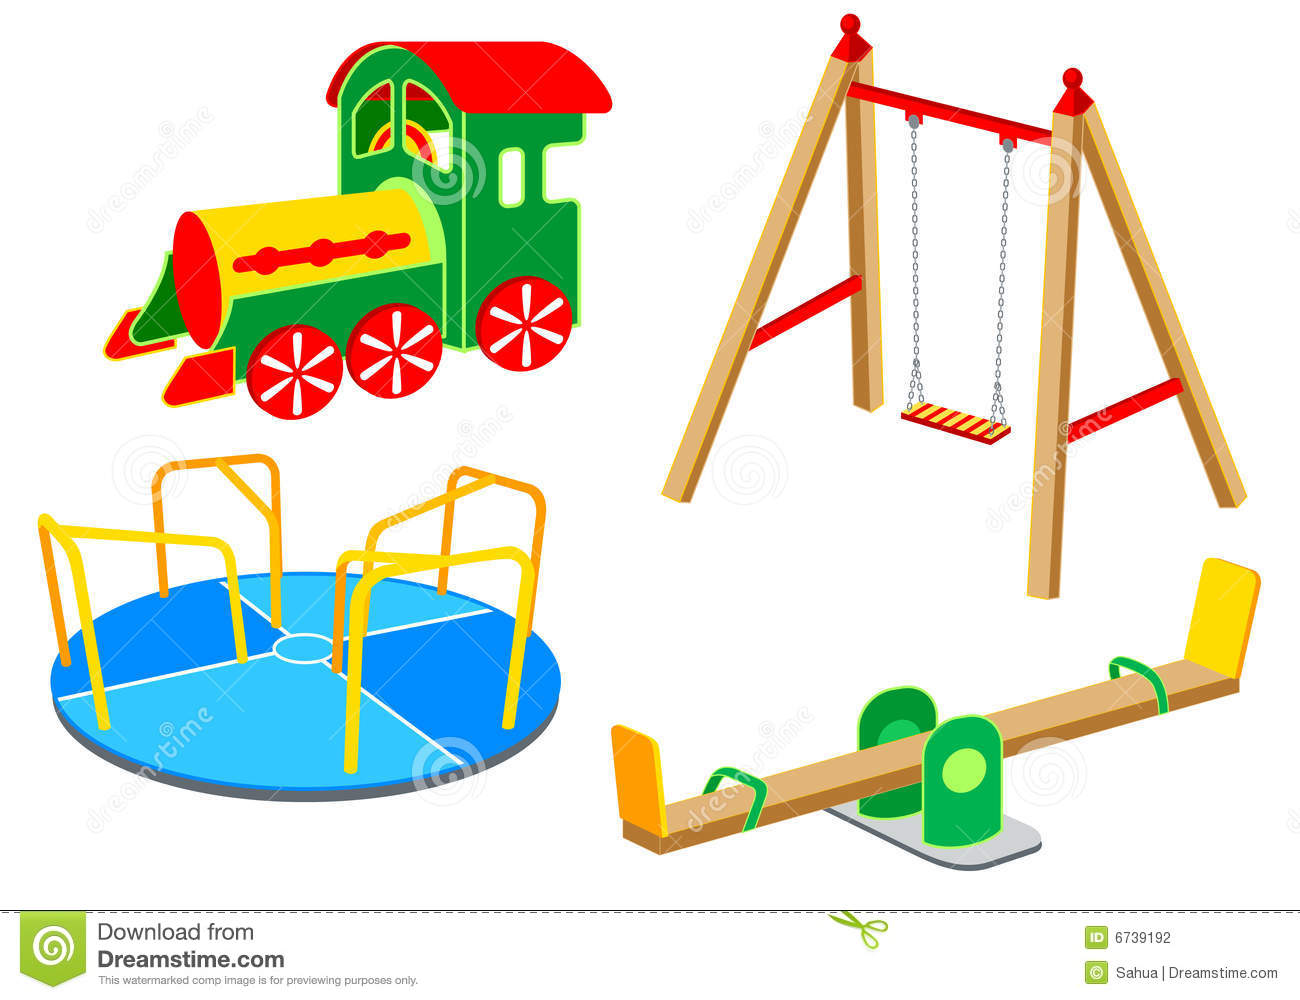 Playground equipment, 1: Carousel, Swing, See-saw, Wooden Train.